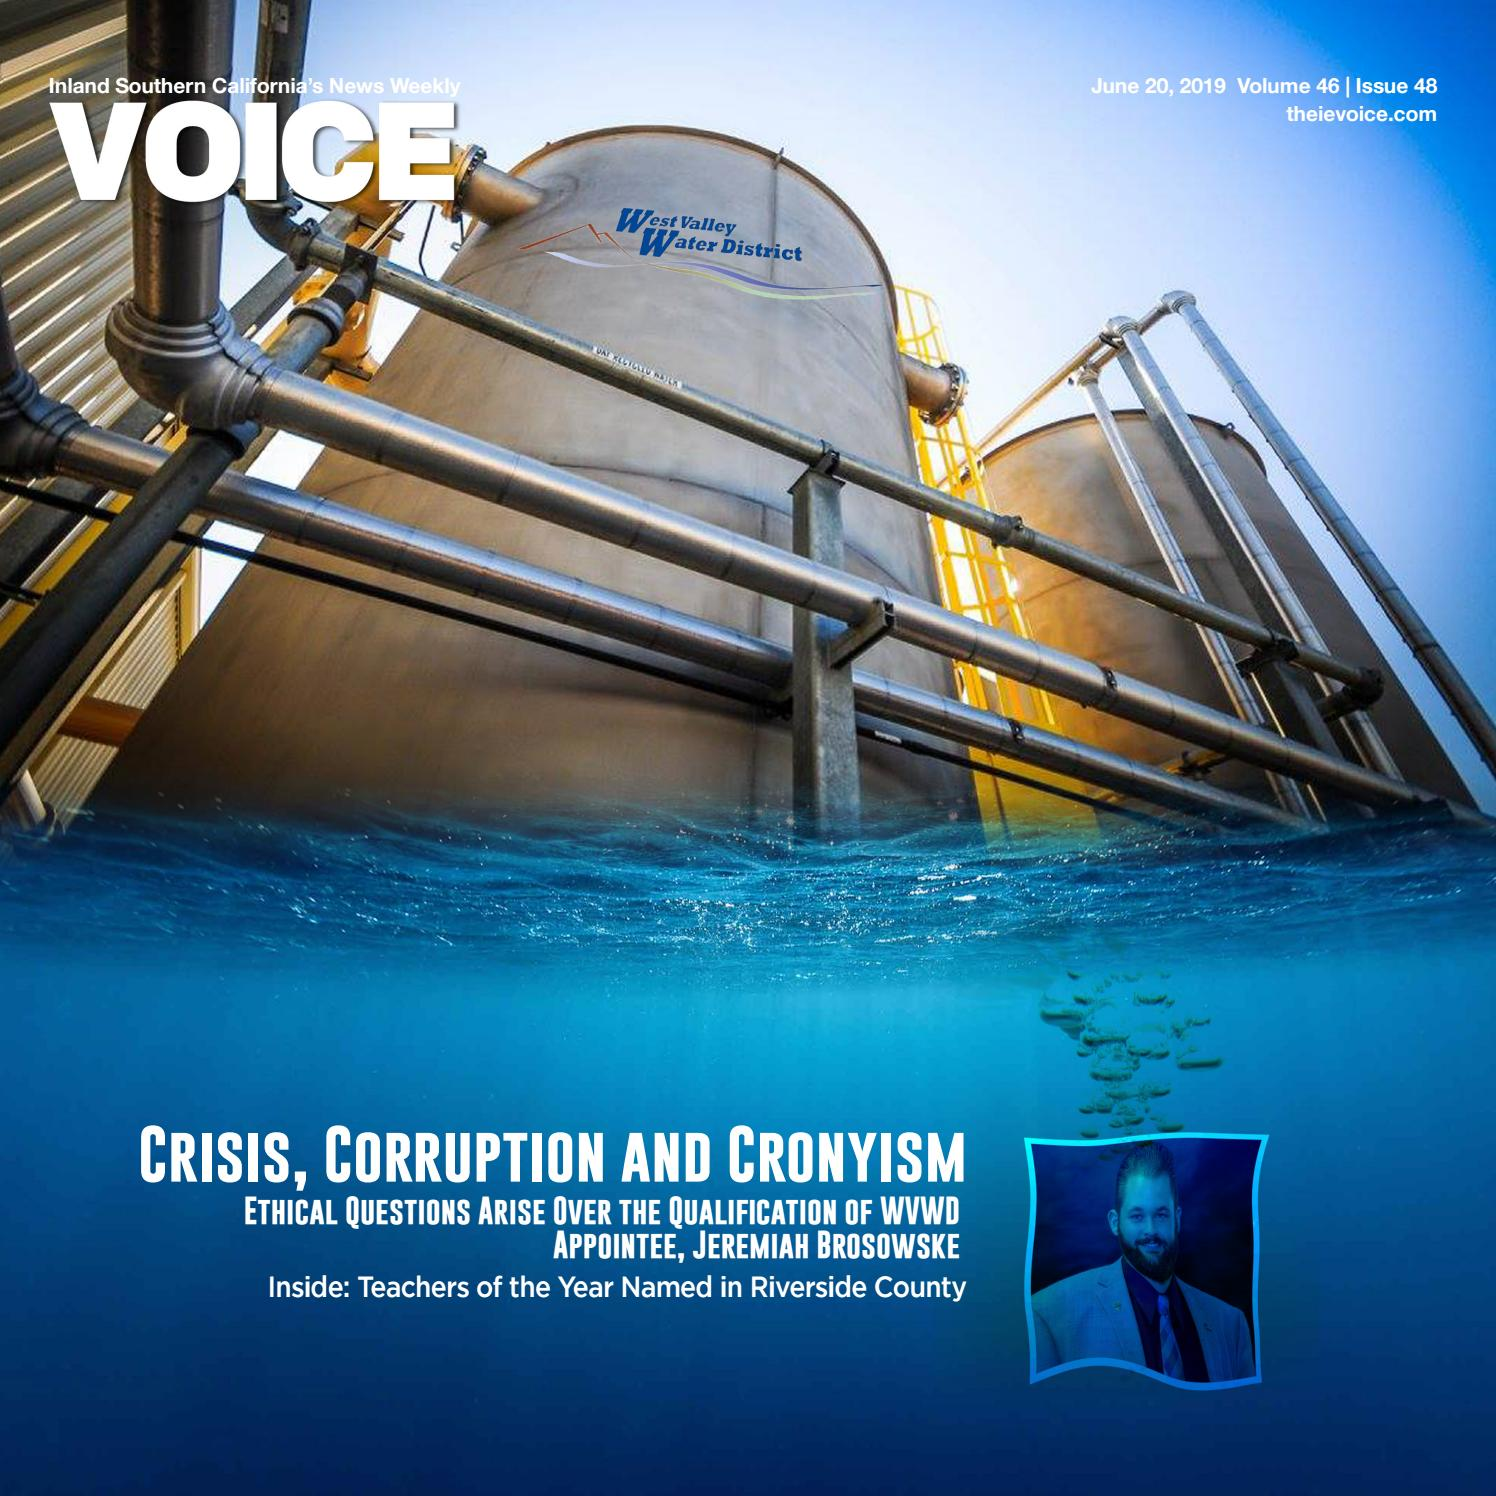 VOICE Issue June 20, 2019 by Brown Publishing Co - issuu